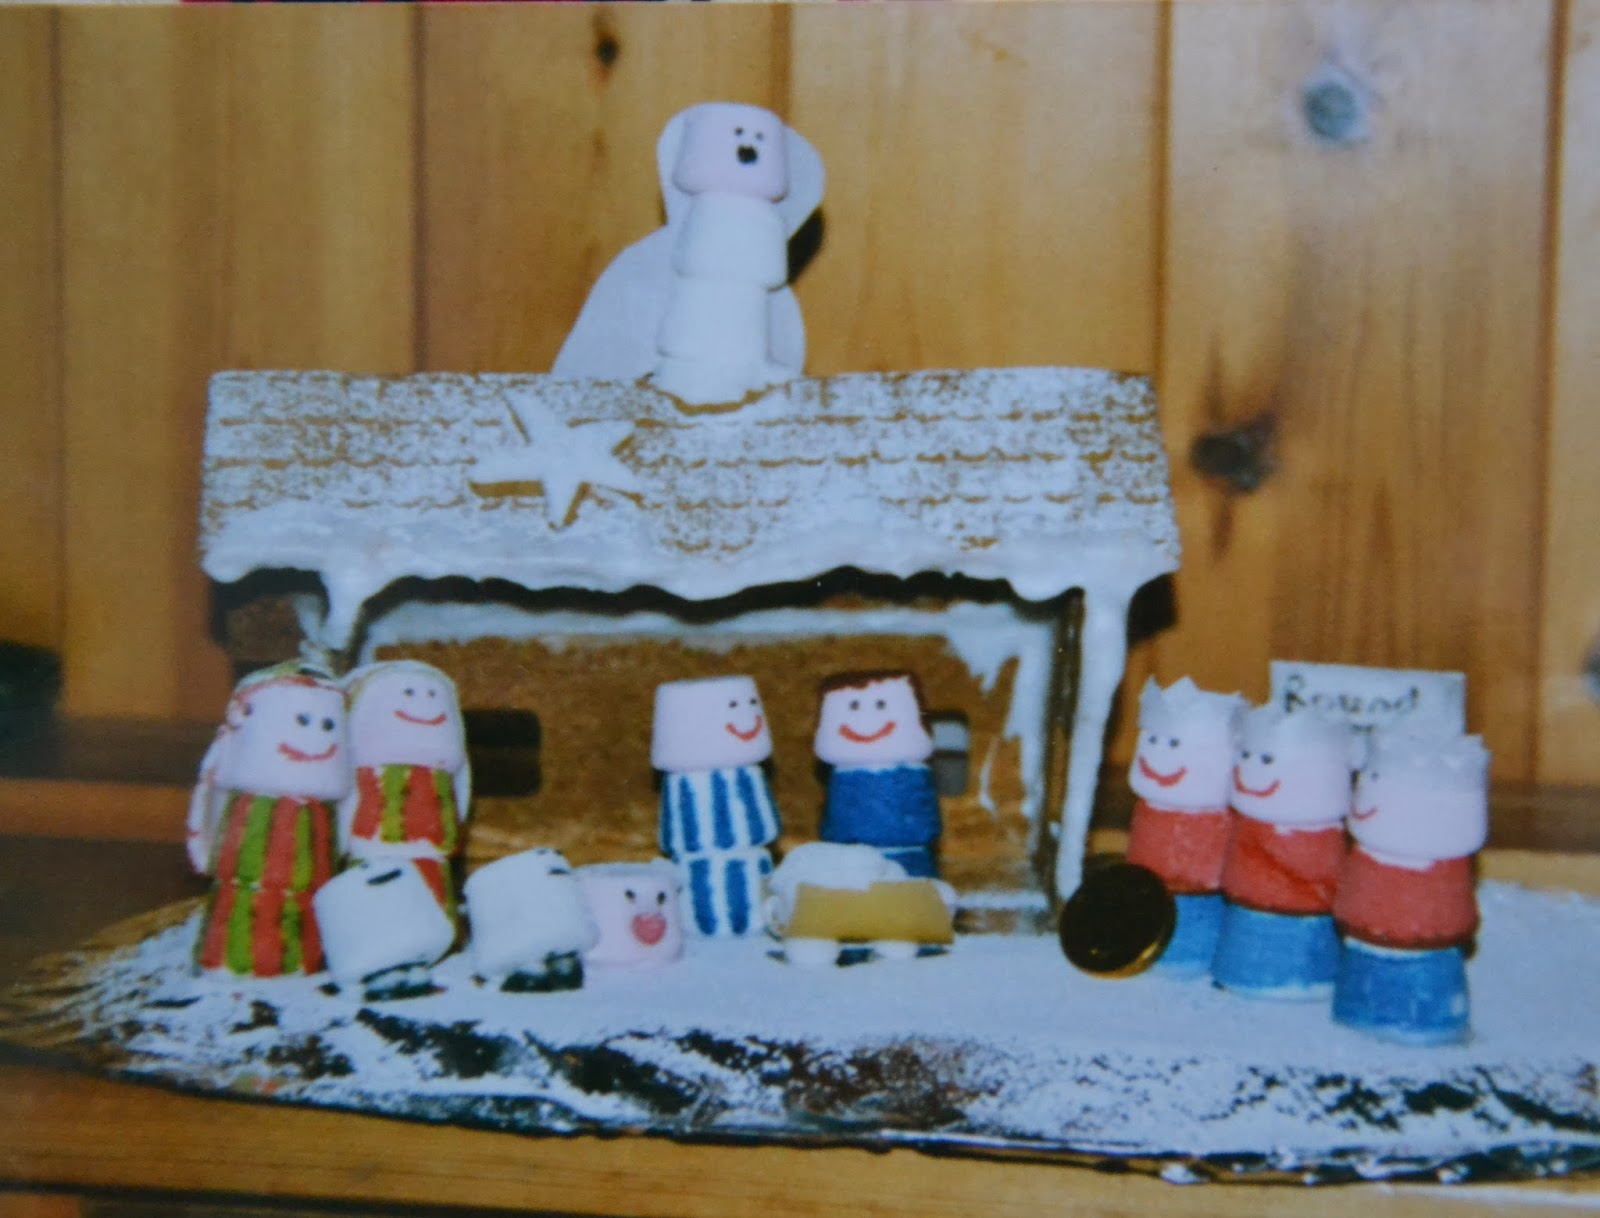 Throwback Thursday gingerbread houses